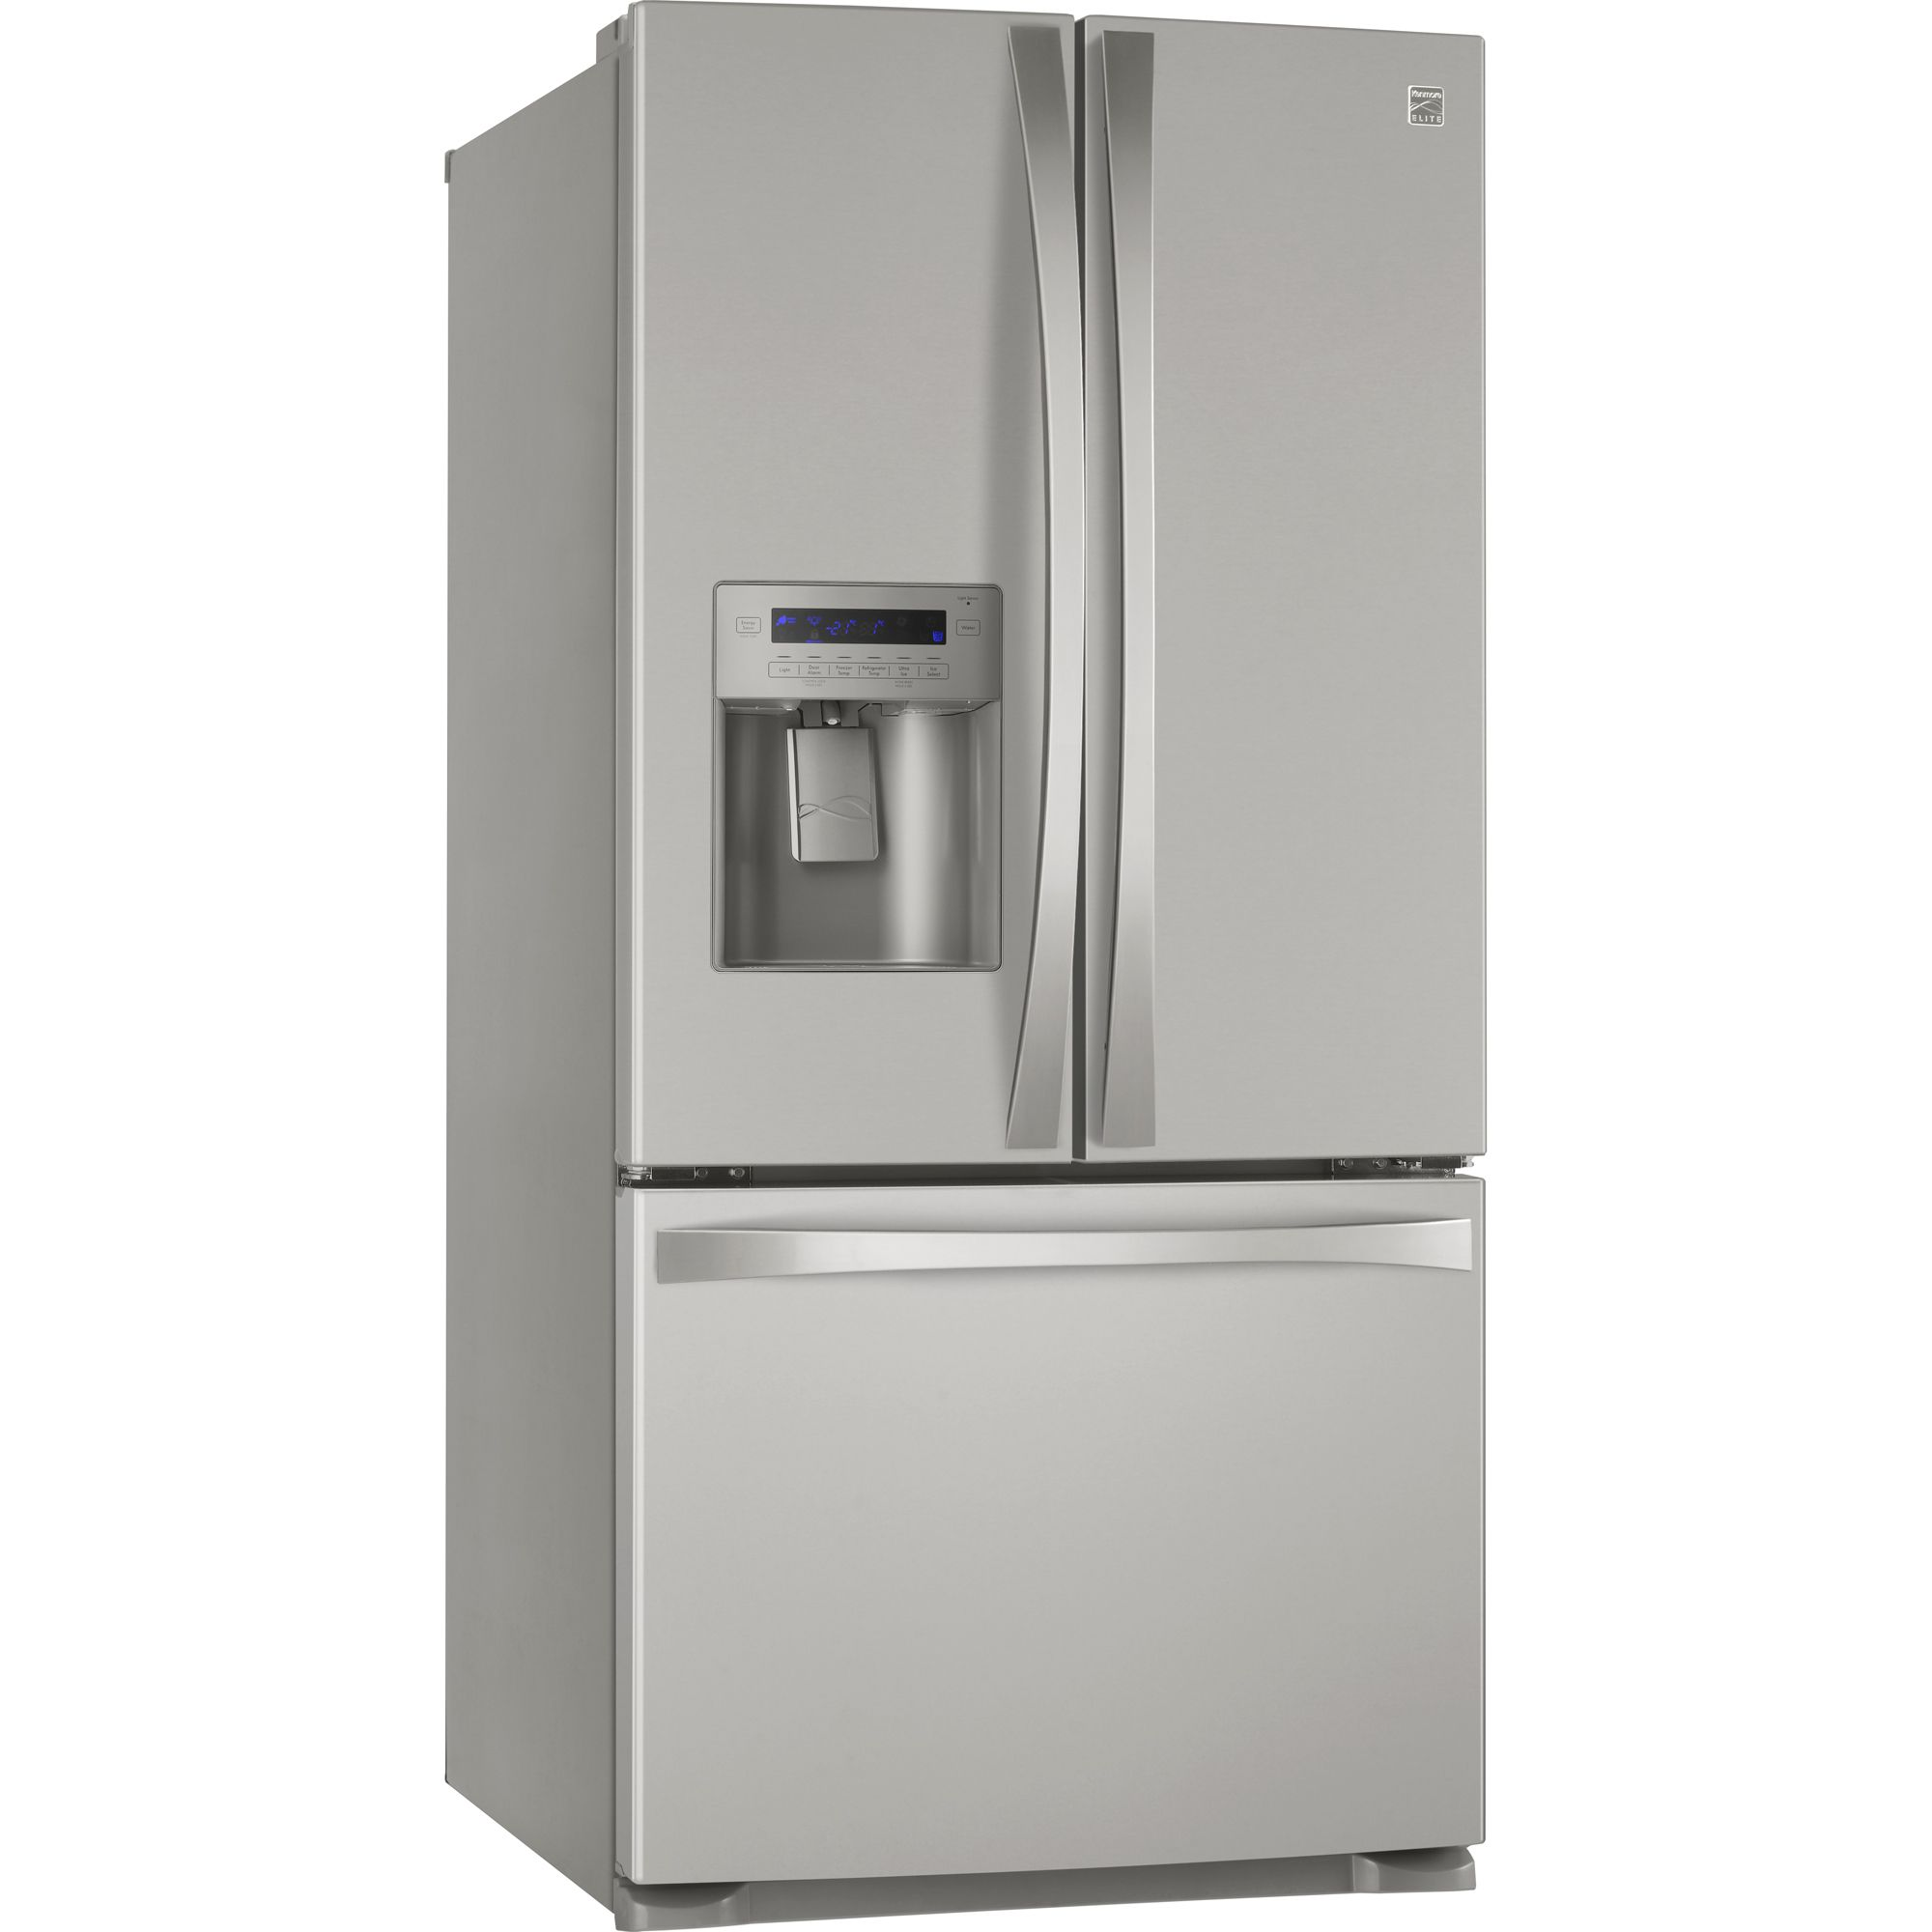 Kenmore Elite 25.0 cu. ft. French-Door Bottom-Freezer Refrigerator - Metallic